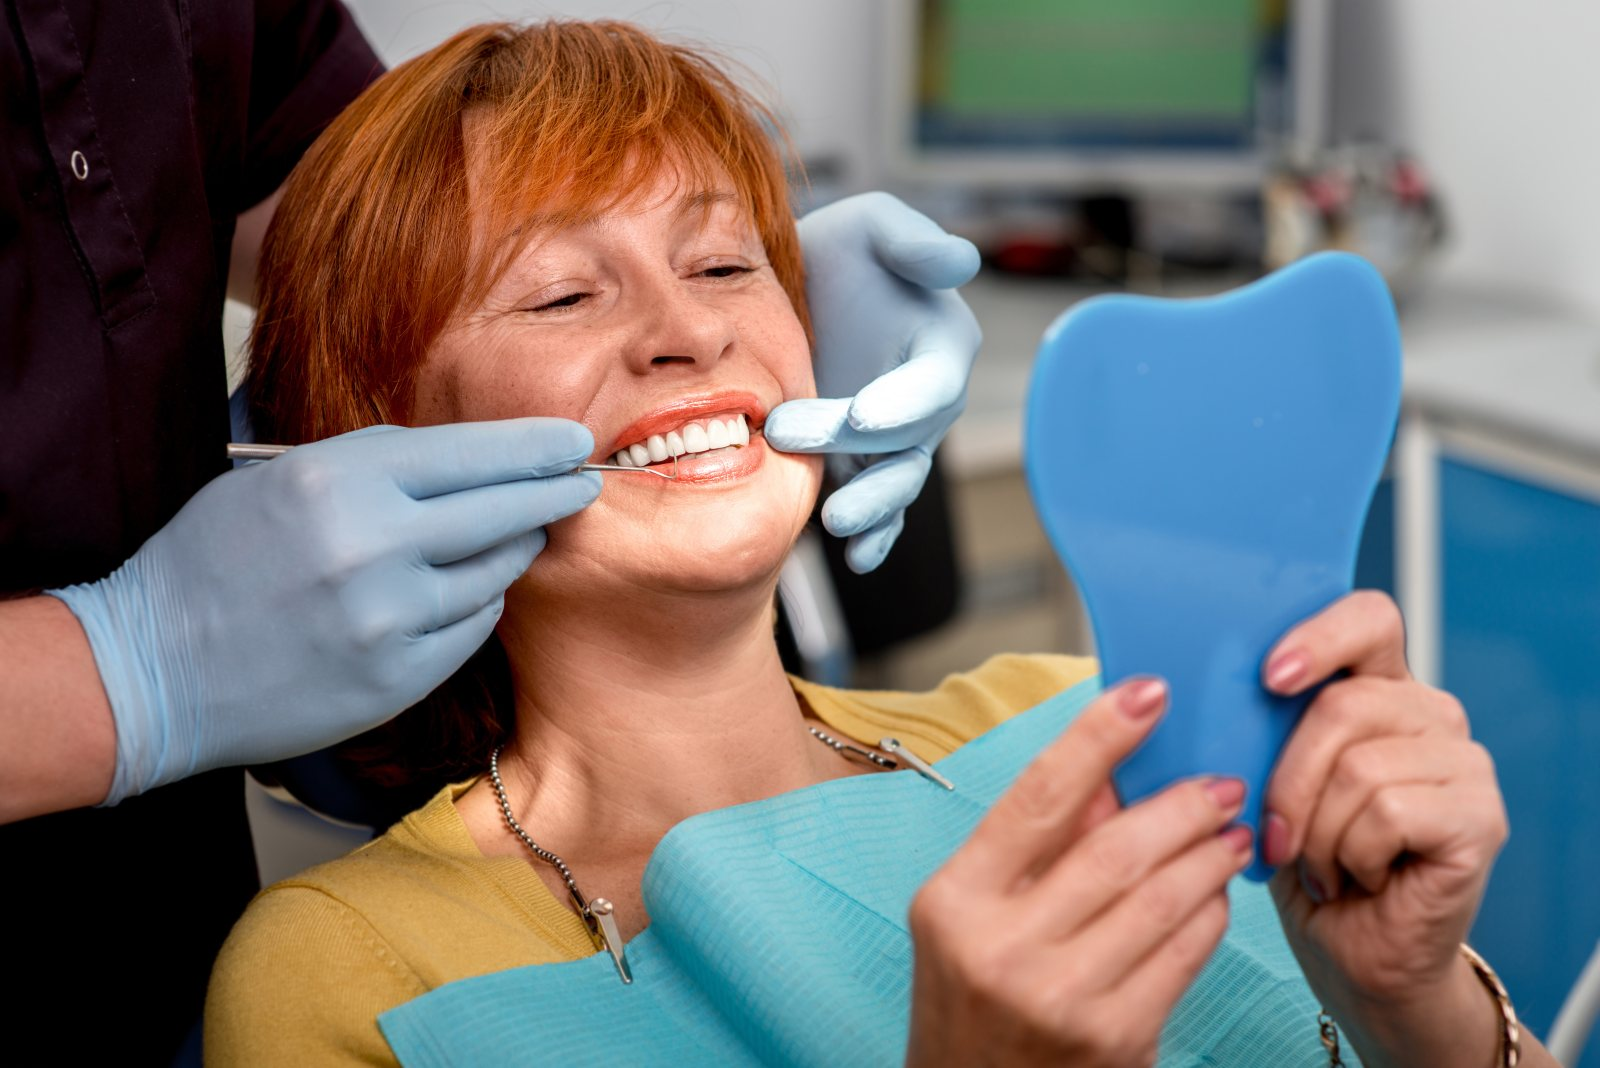 woman smiling in mirror while dentist works on her